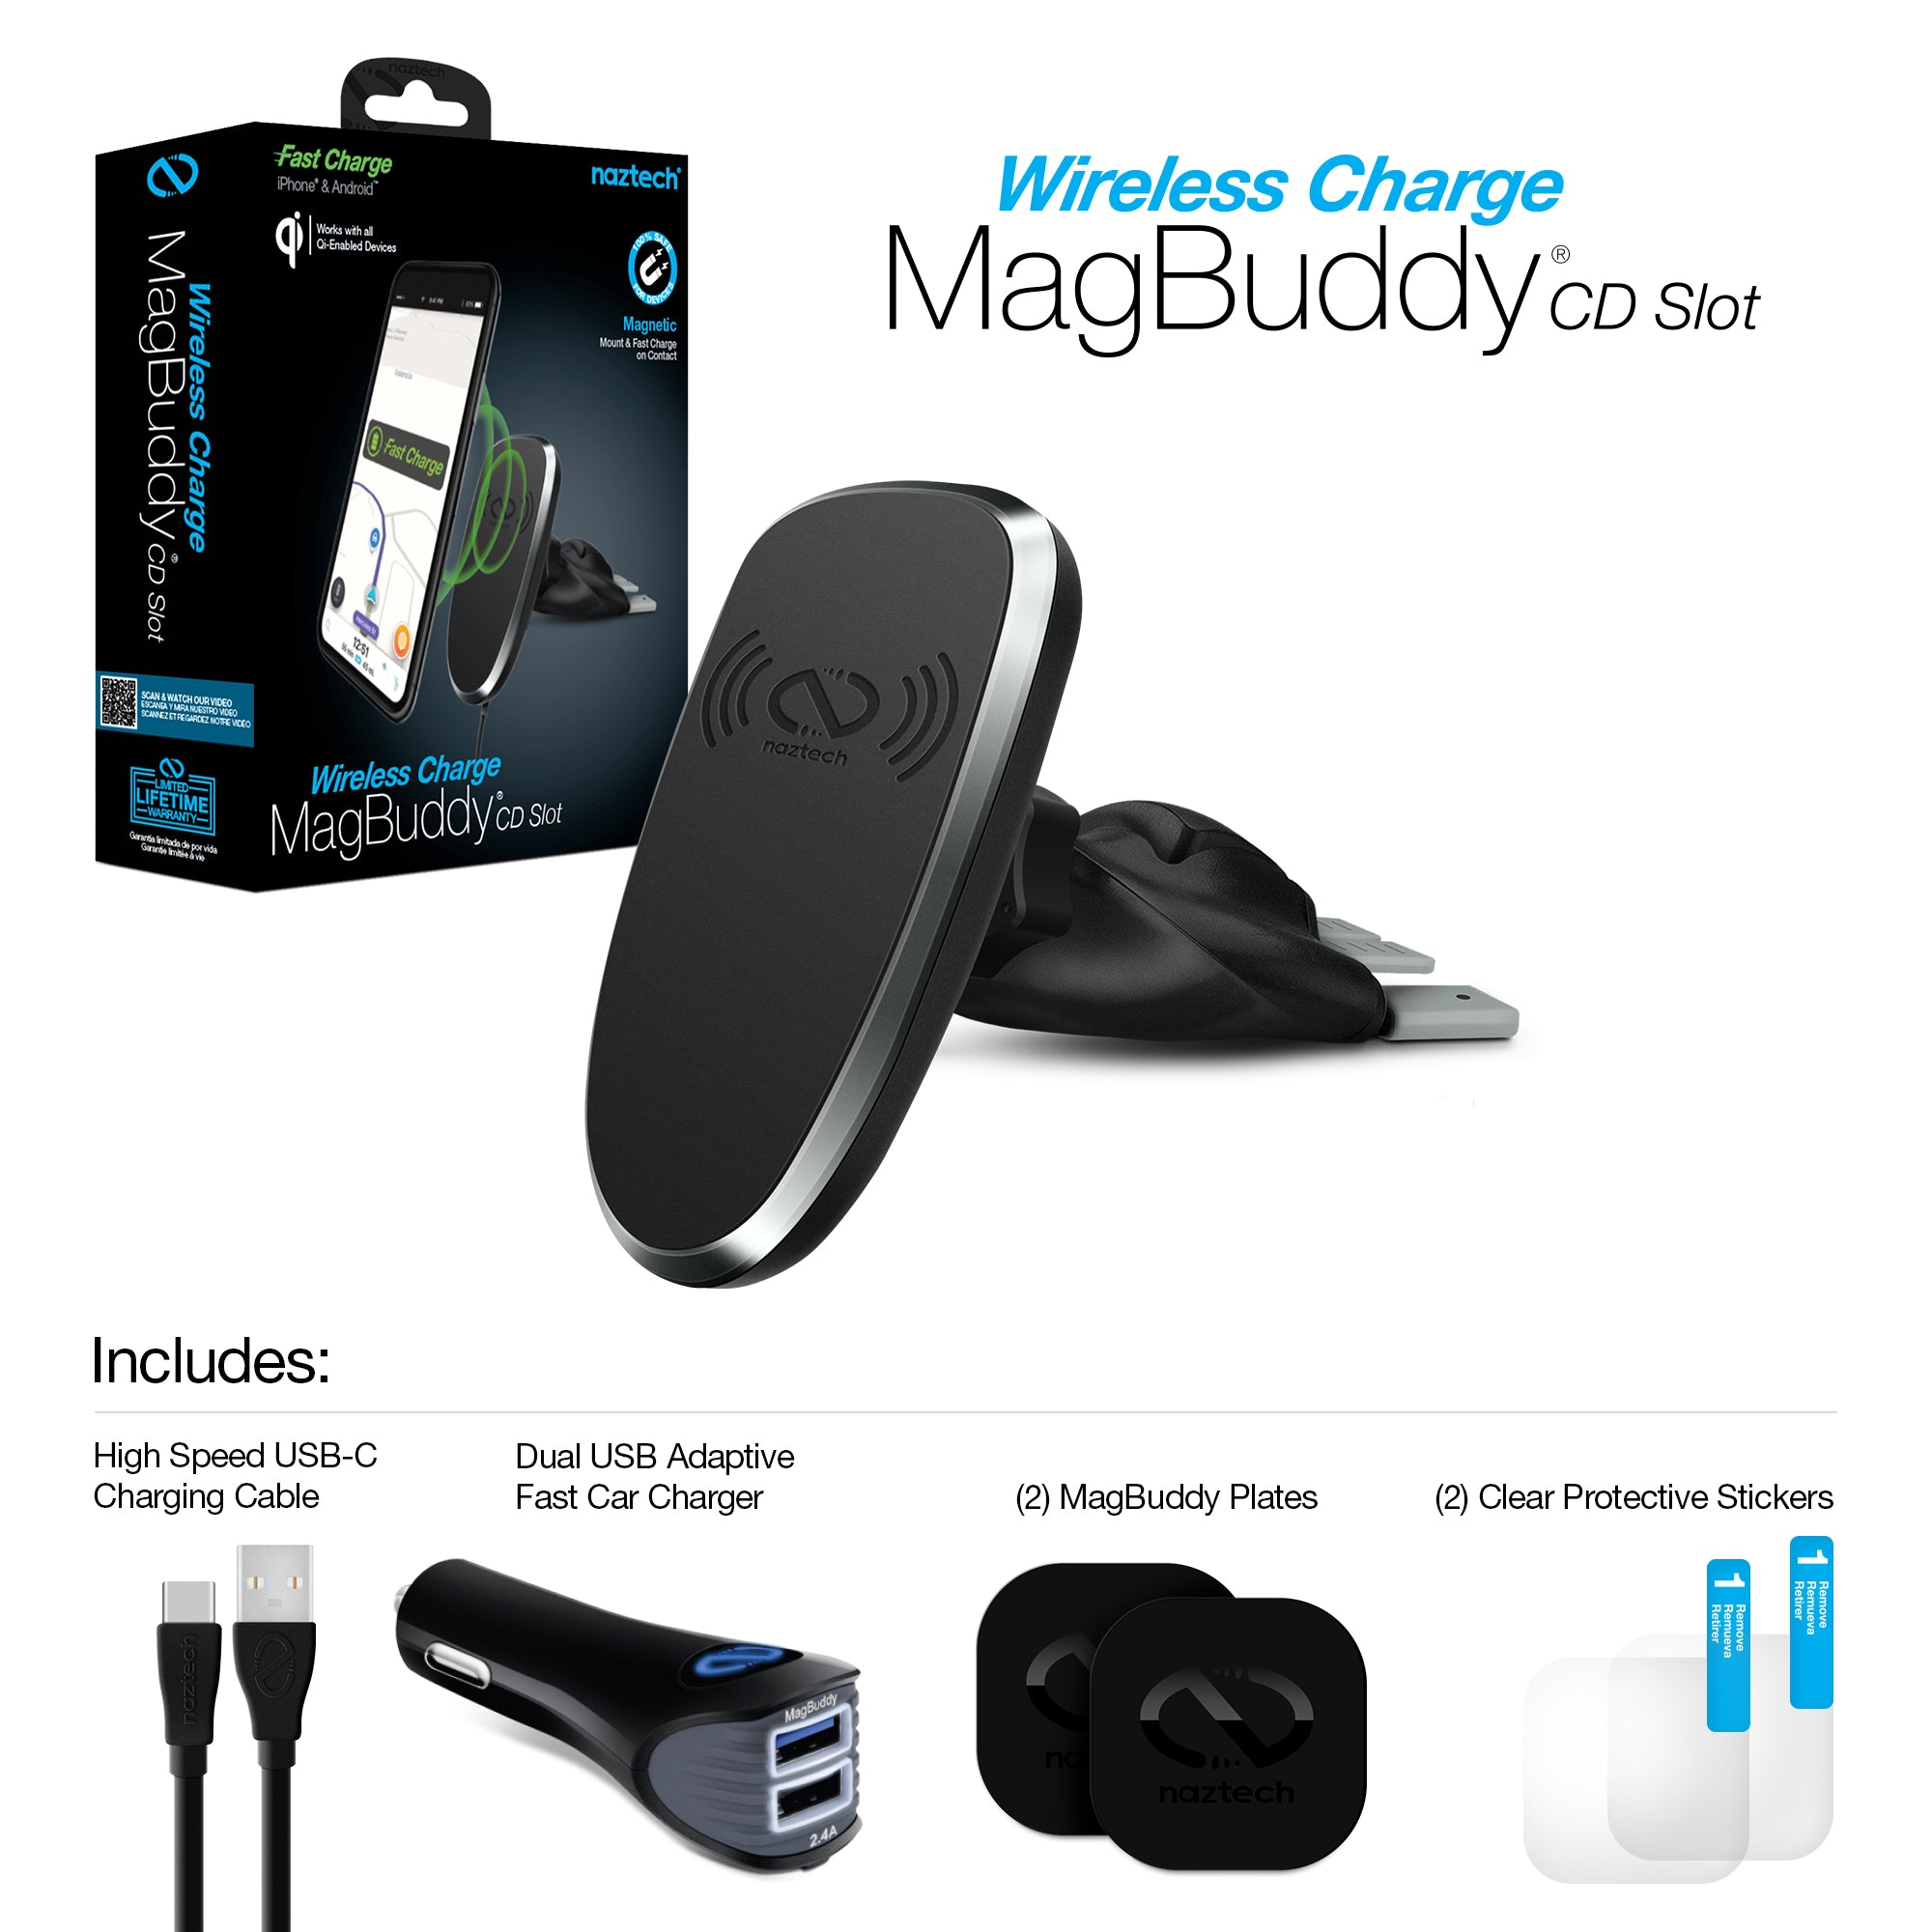 MagBuddy Wireless Charge CD Slot